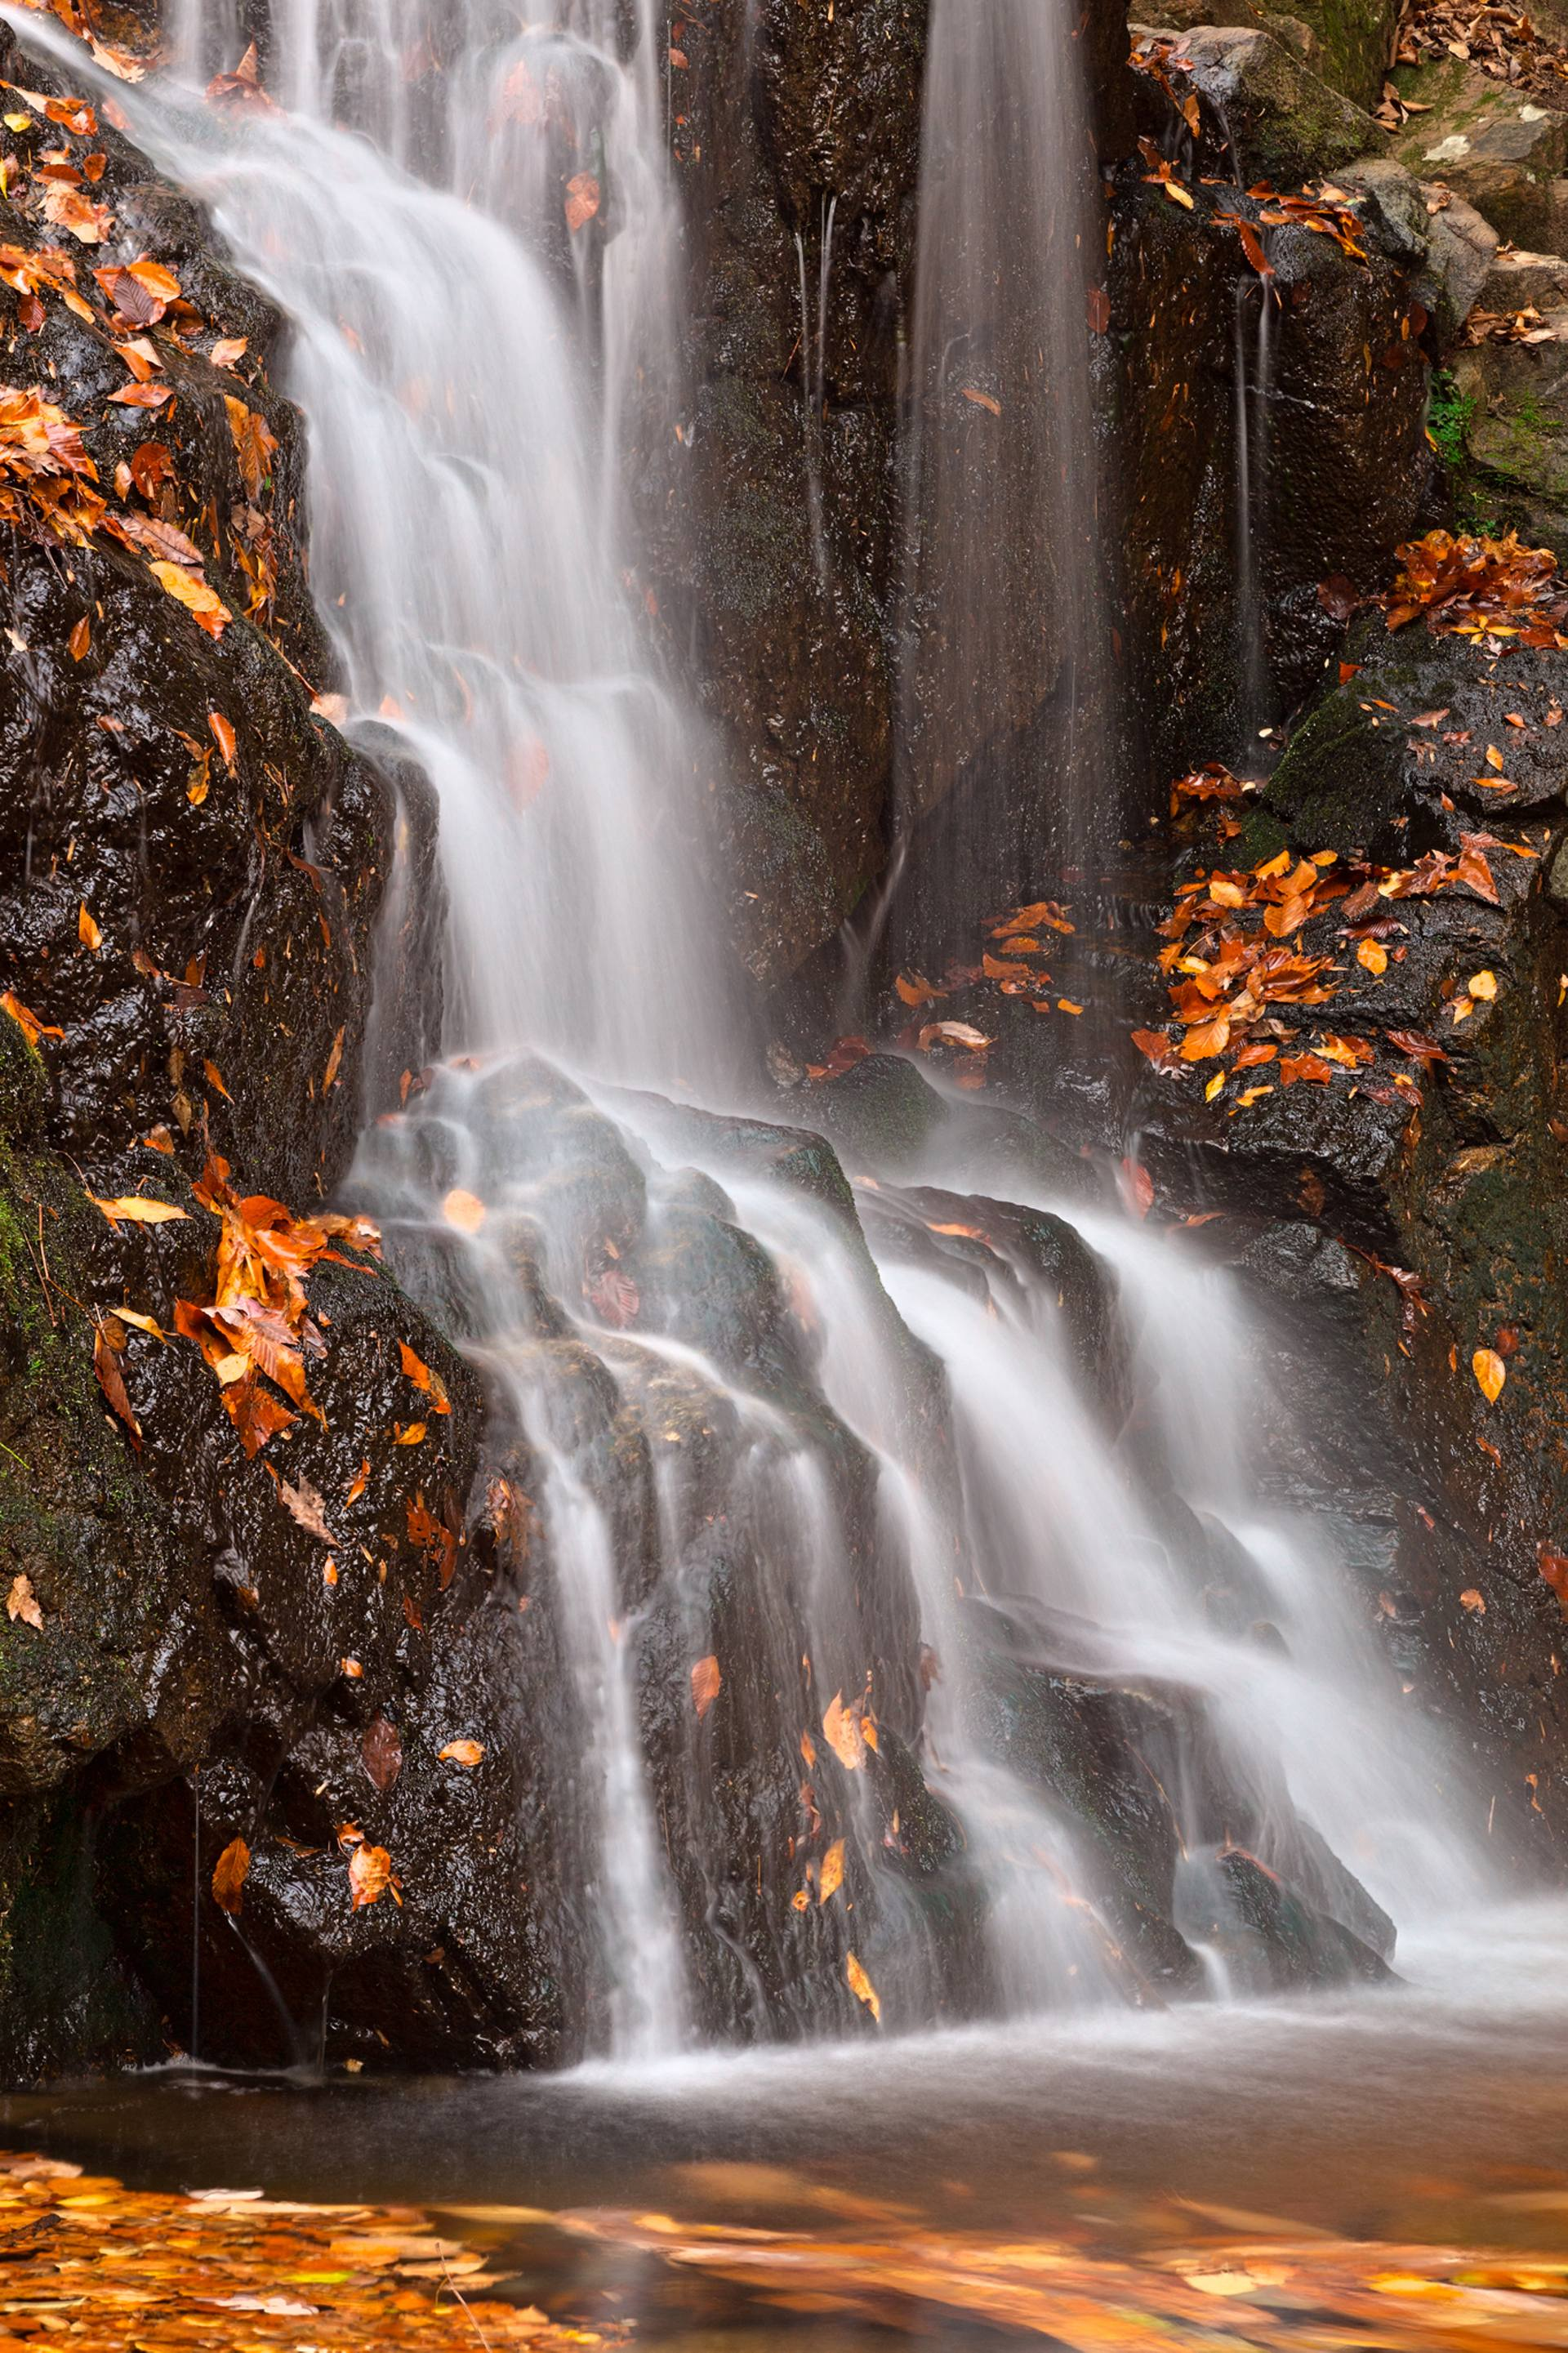 Saatchi Art: Avalon Falls - Limited Edition 1 of 7 Photography by ...